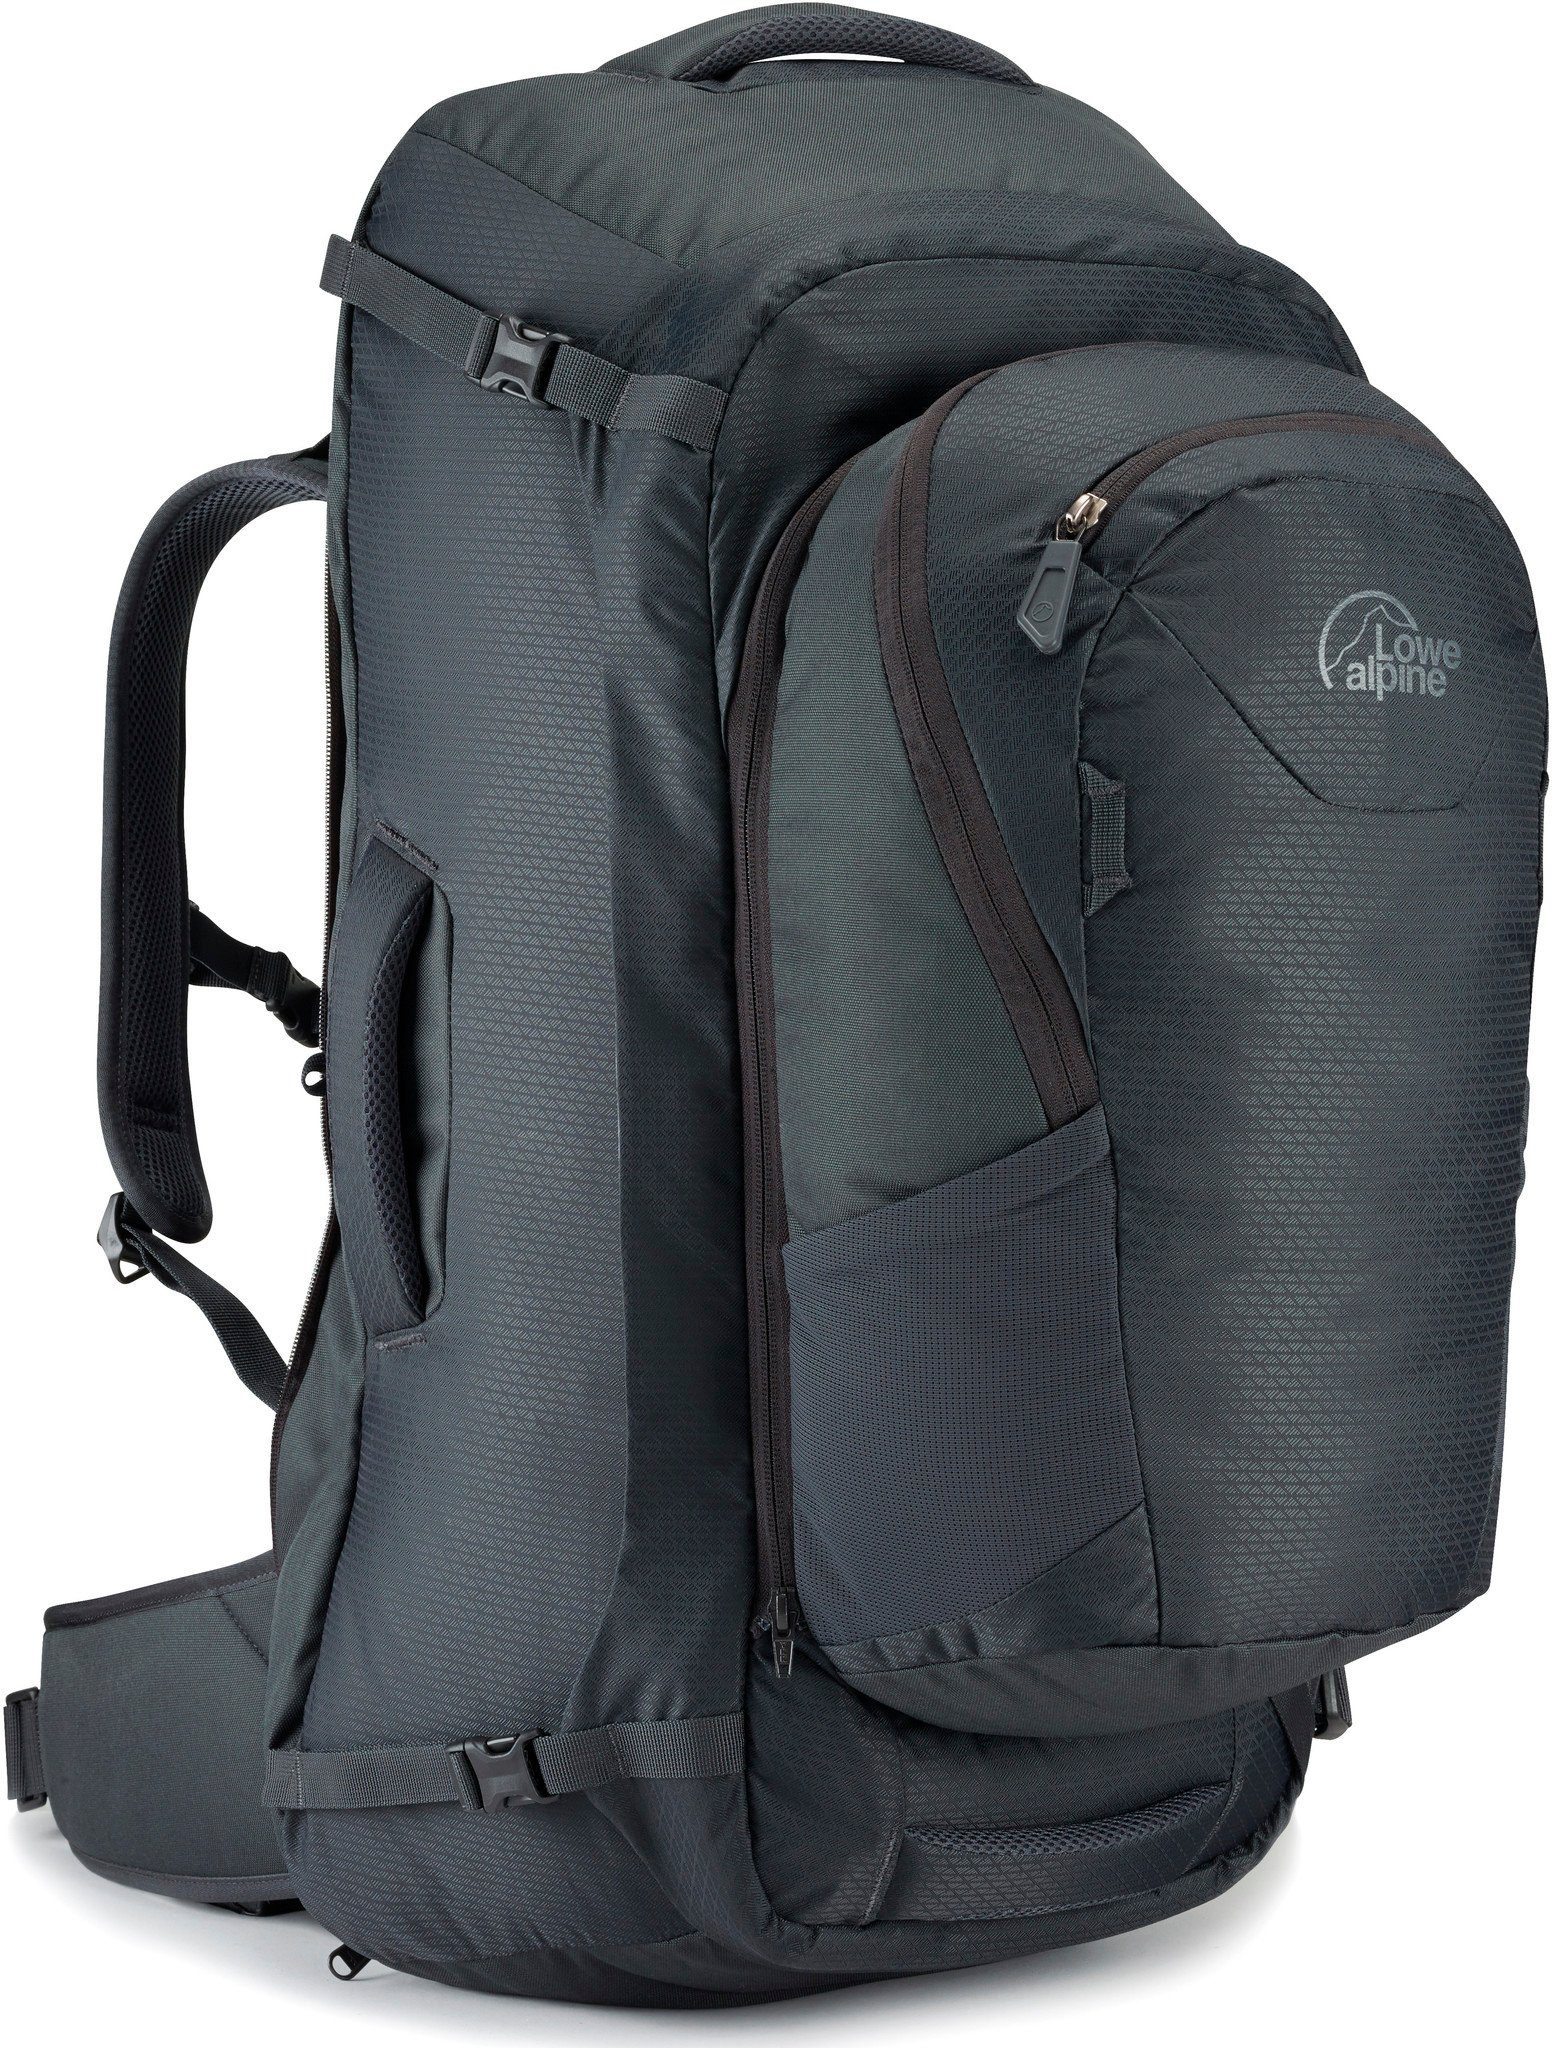 Lowe Alpine Wanderrucksack »AT Voyager 50:15 Backpack Women«